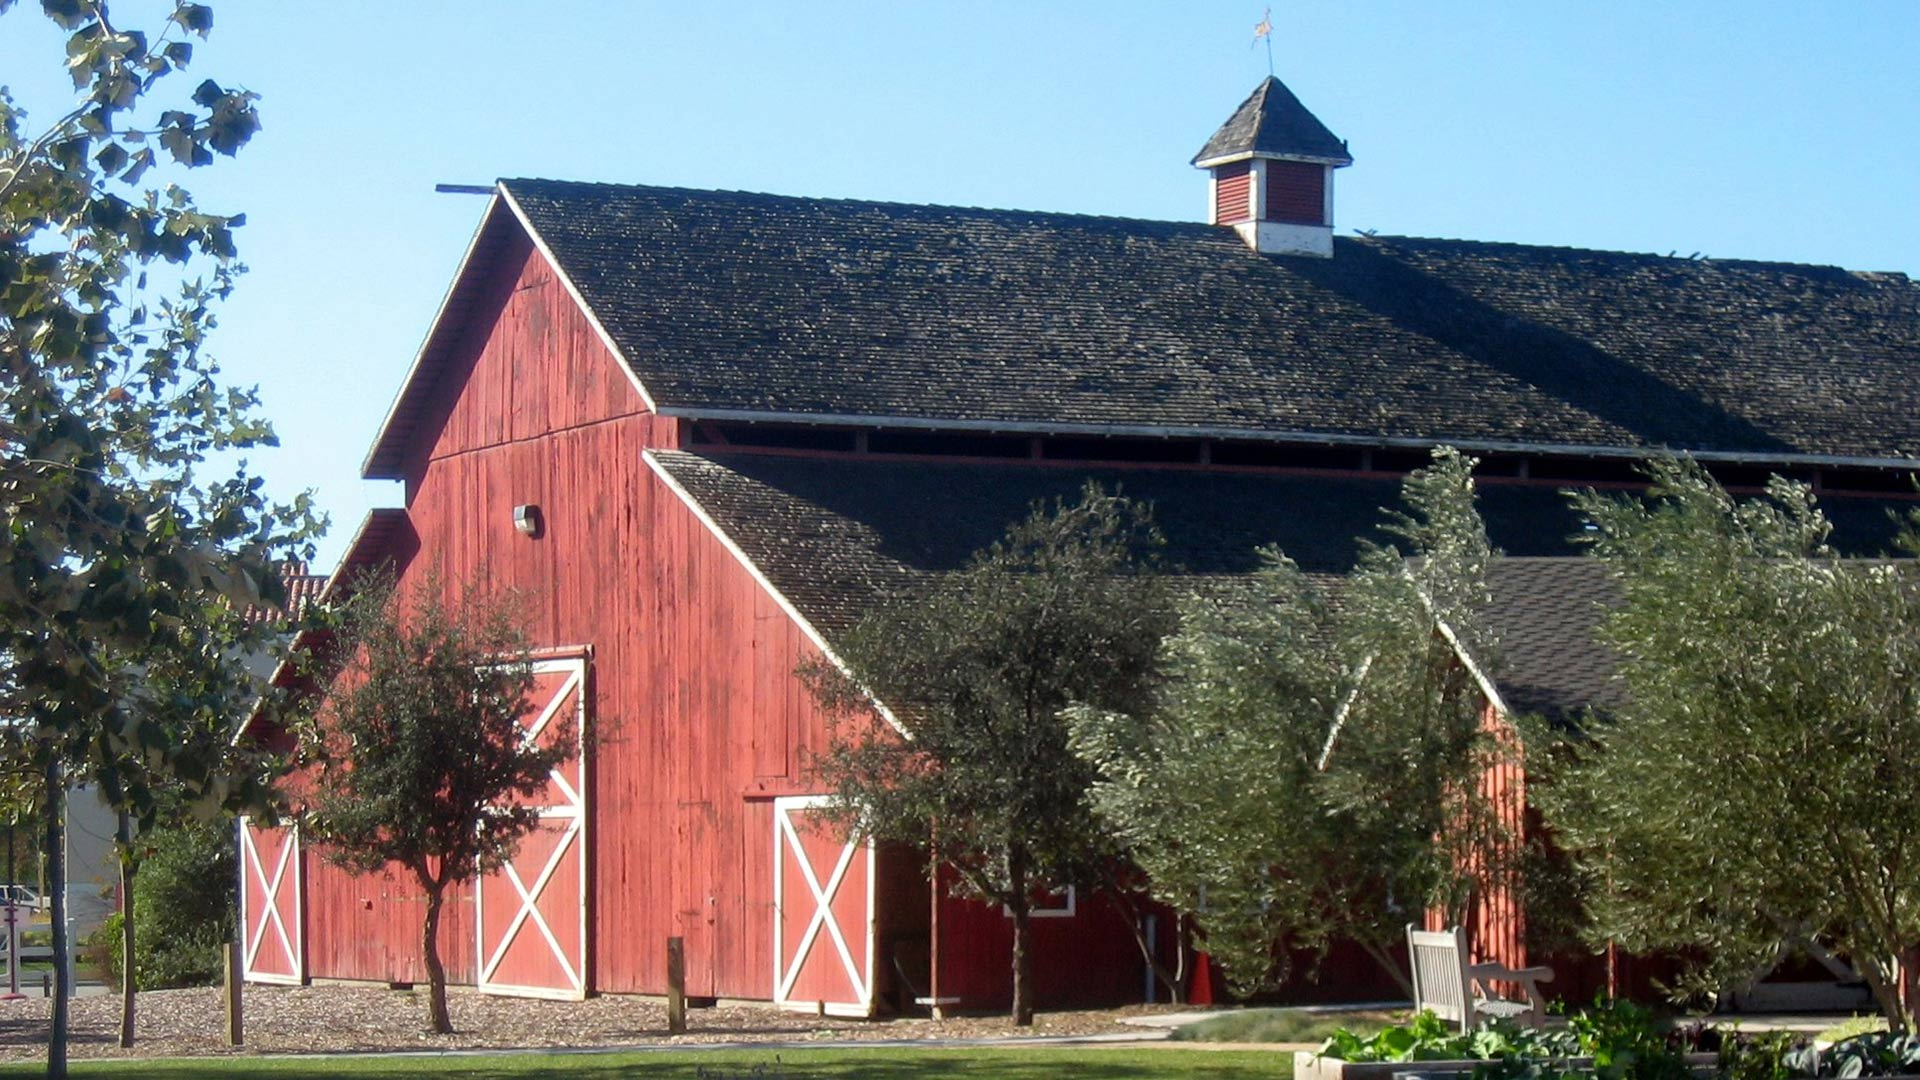 Side view of the red barn at Camarillo Ranch.